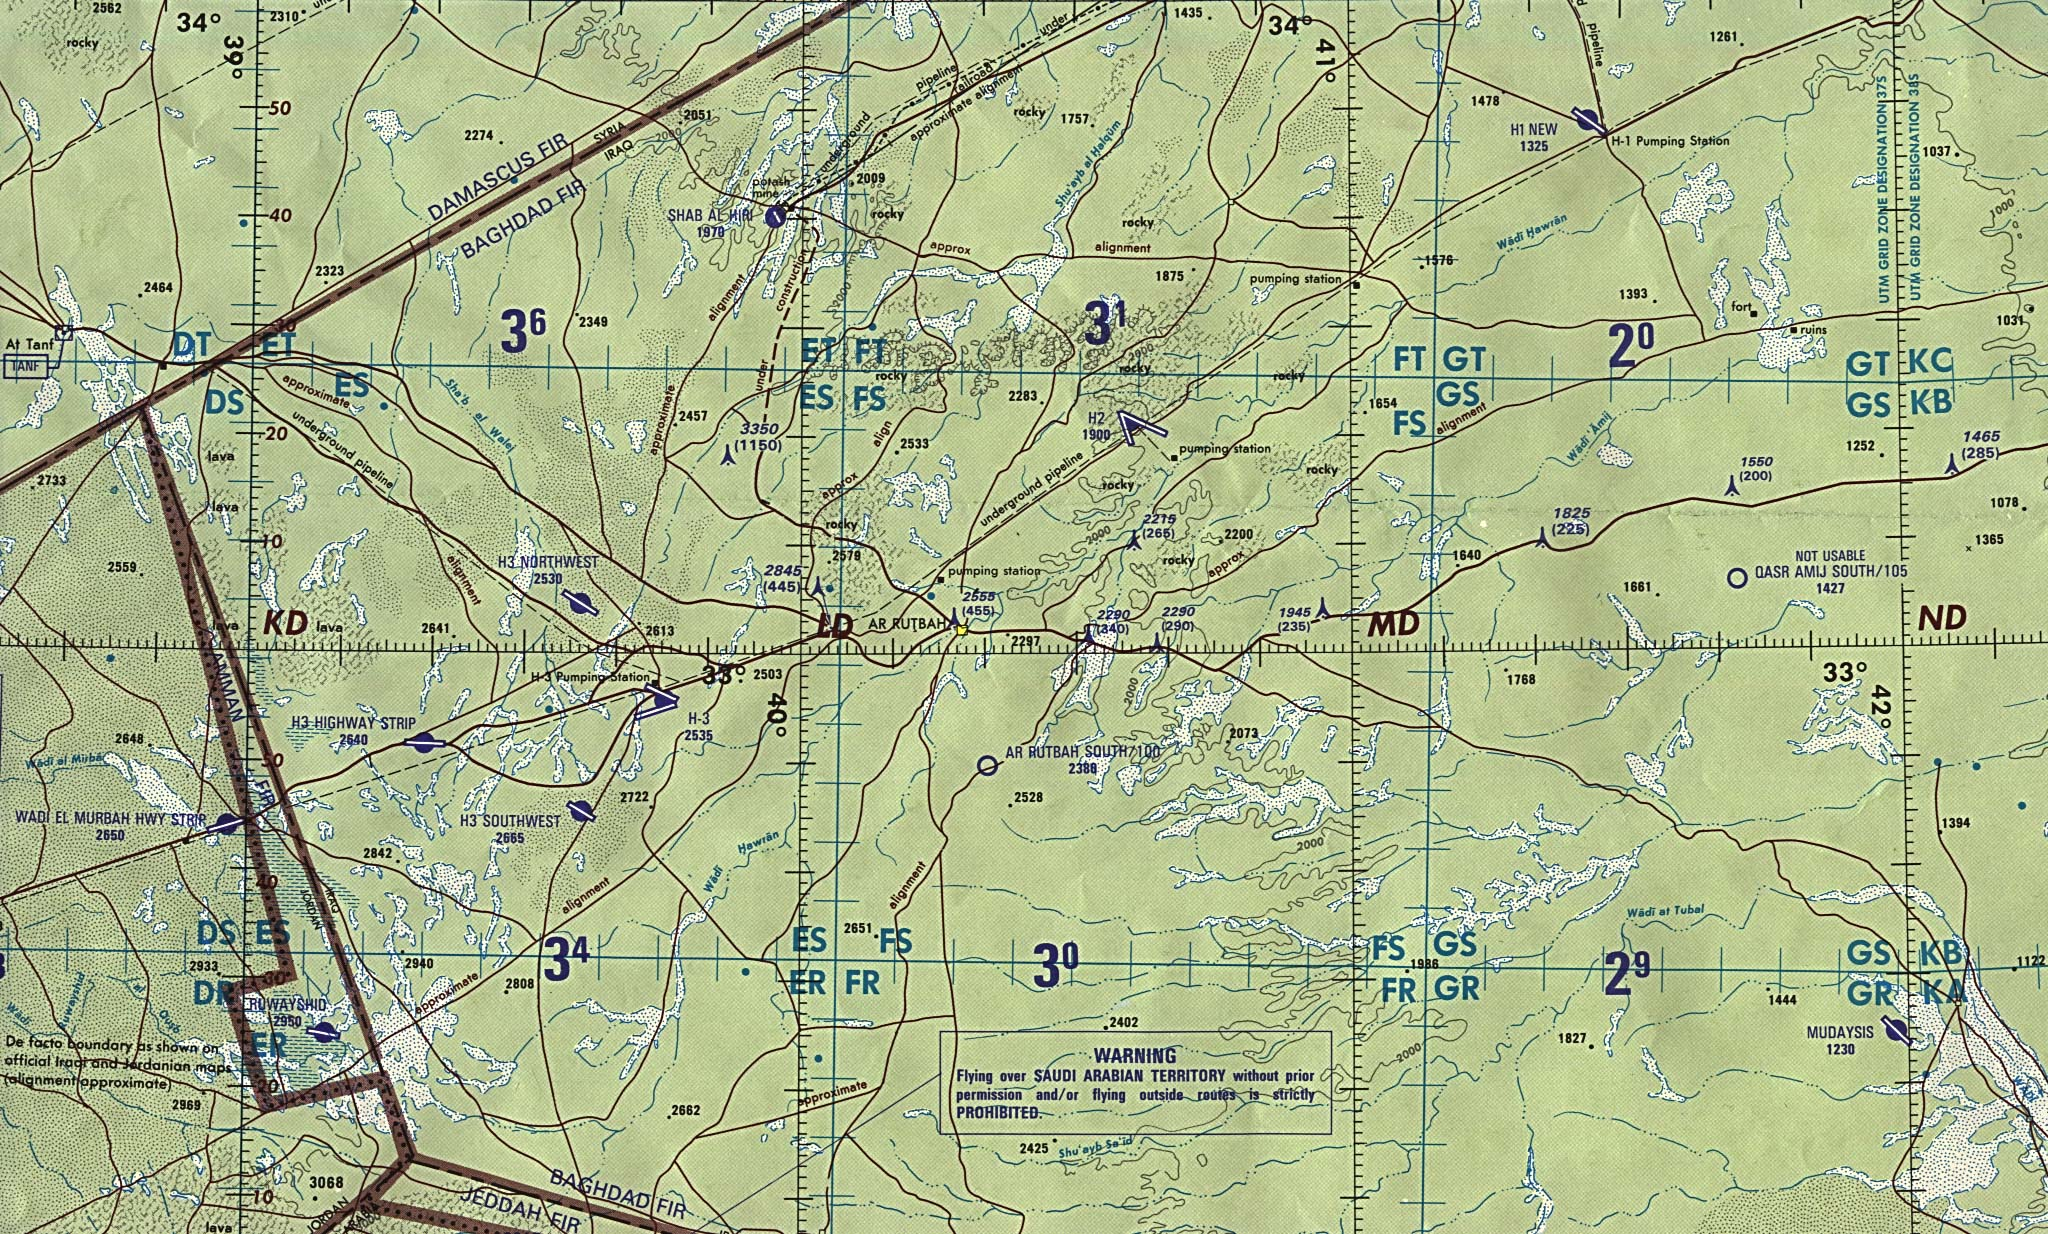 Iraq Maps PerryCastañeda Map Collection UT Library Online - Us defense mapping agency